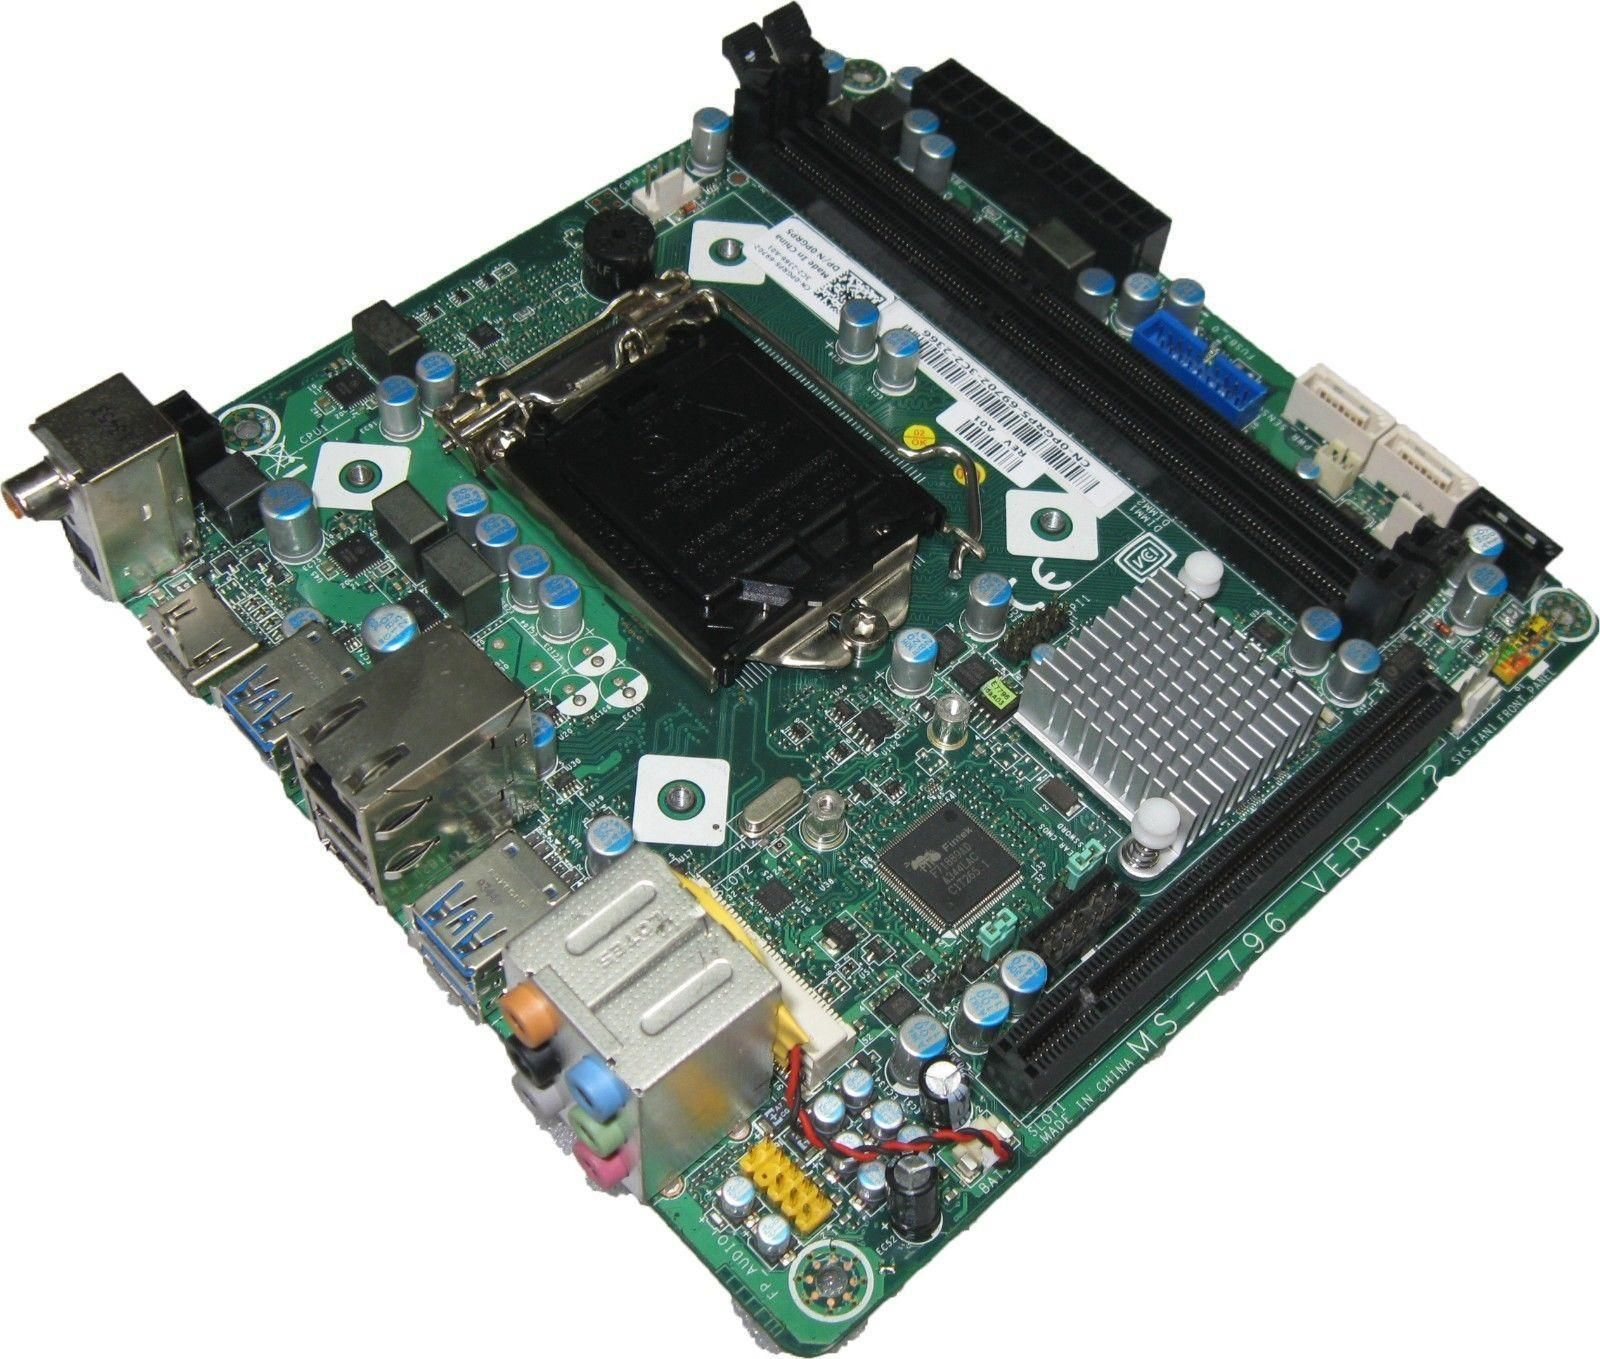 New Dell Alienware X51 R2 Andromeda Intel Motherboard S1150 Pgrp5